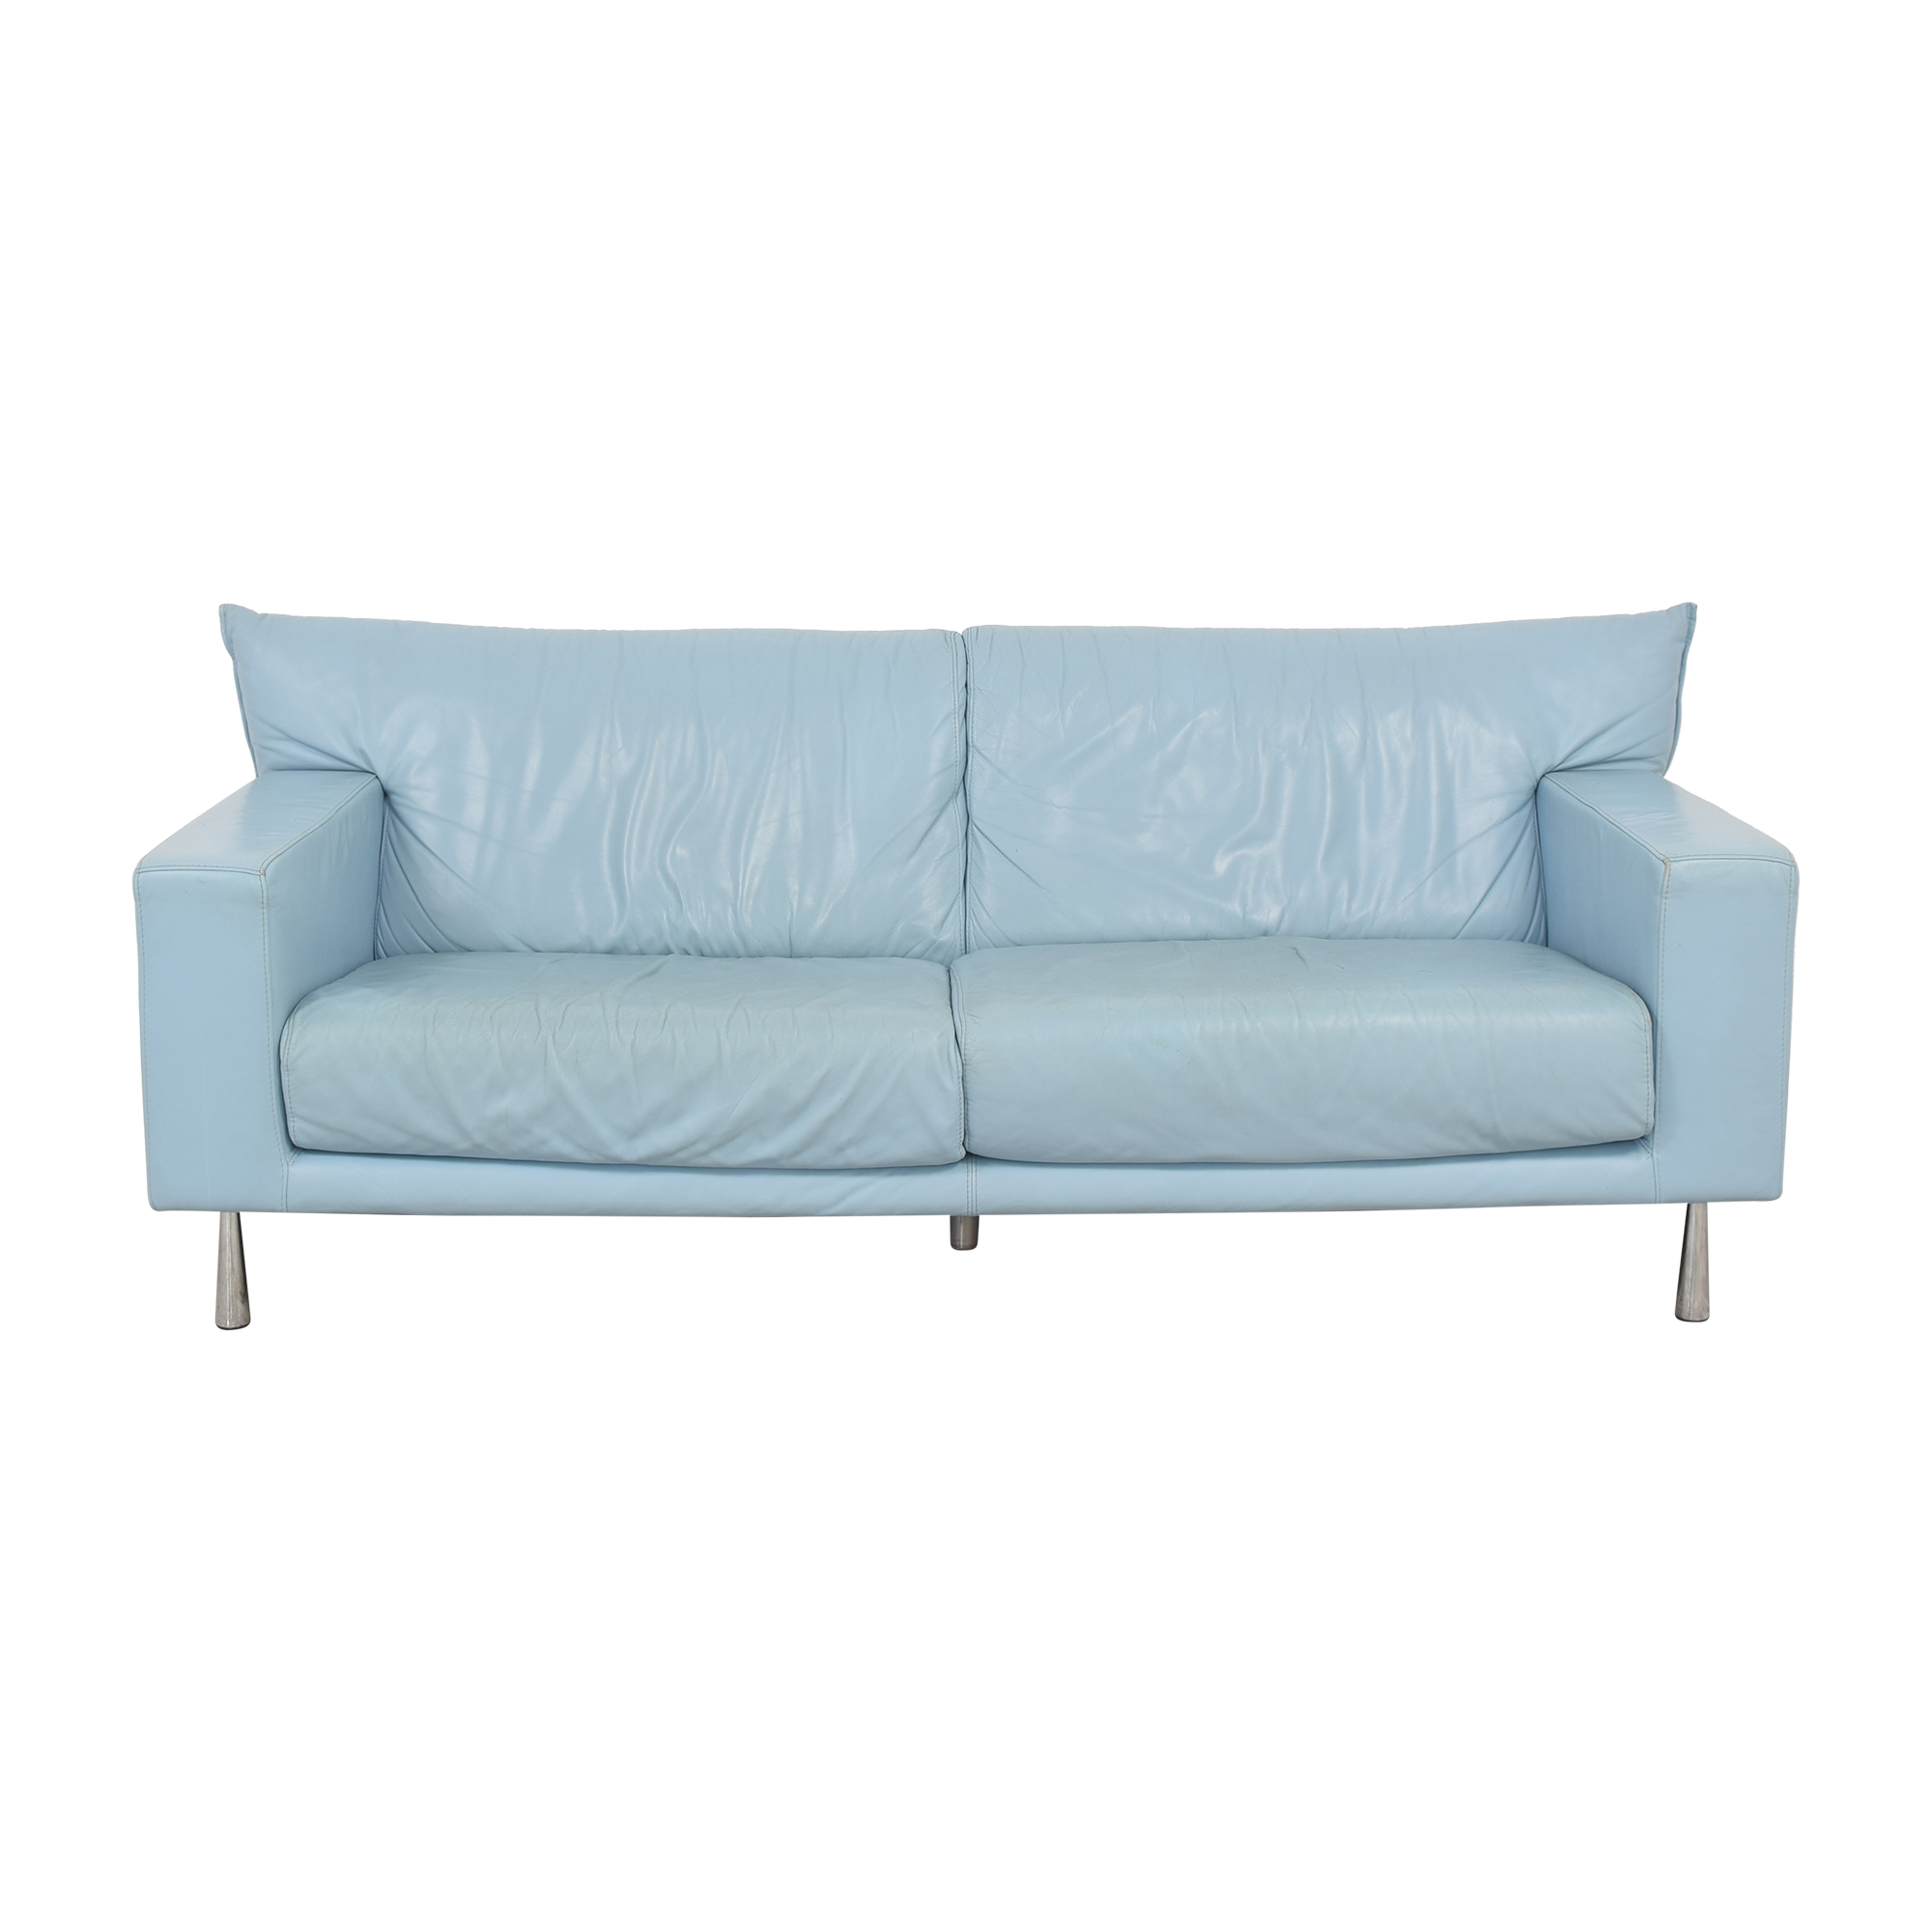 Maurice Villency Maurice Villency Modern Style Sofa dimensions